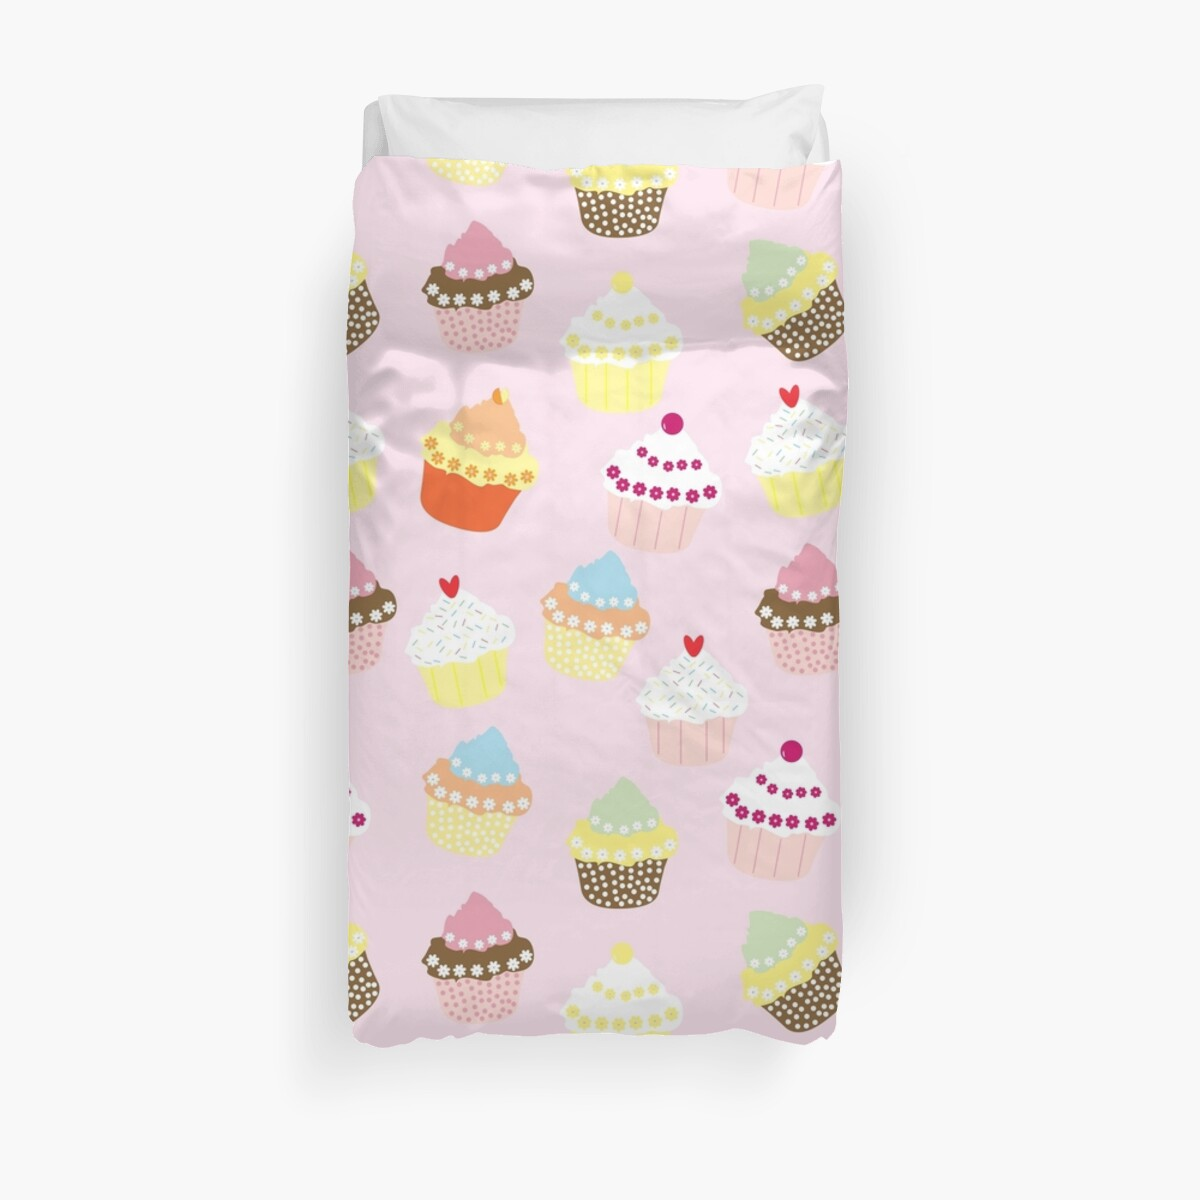 Cute Cupcakes with Sprinkles on Pink Background by critterville